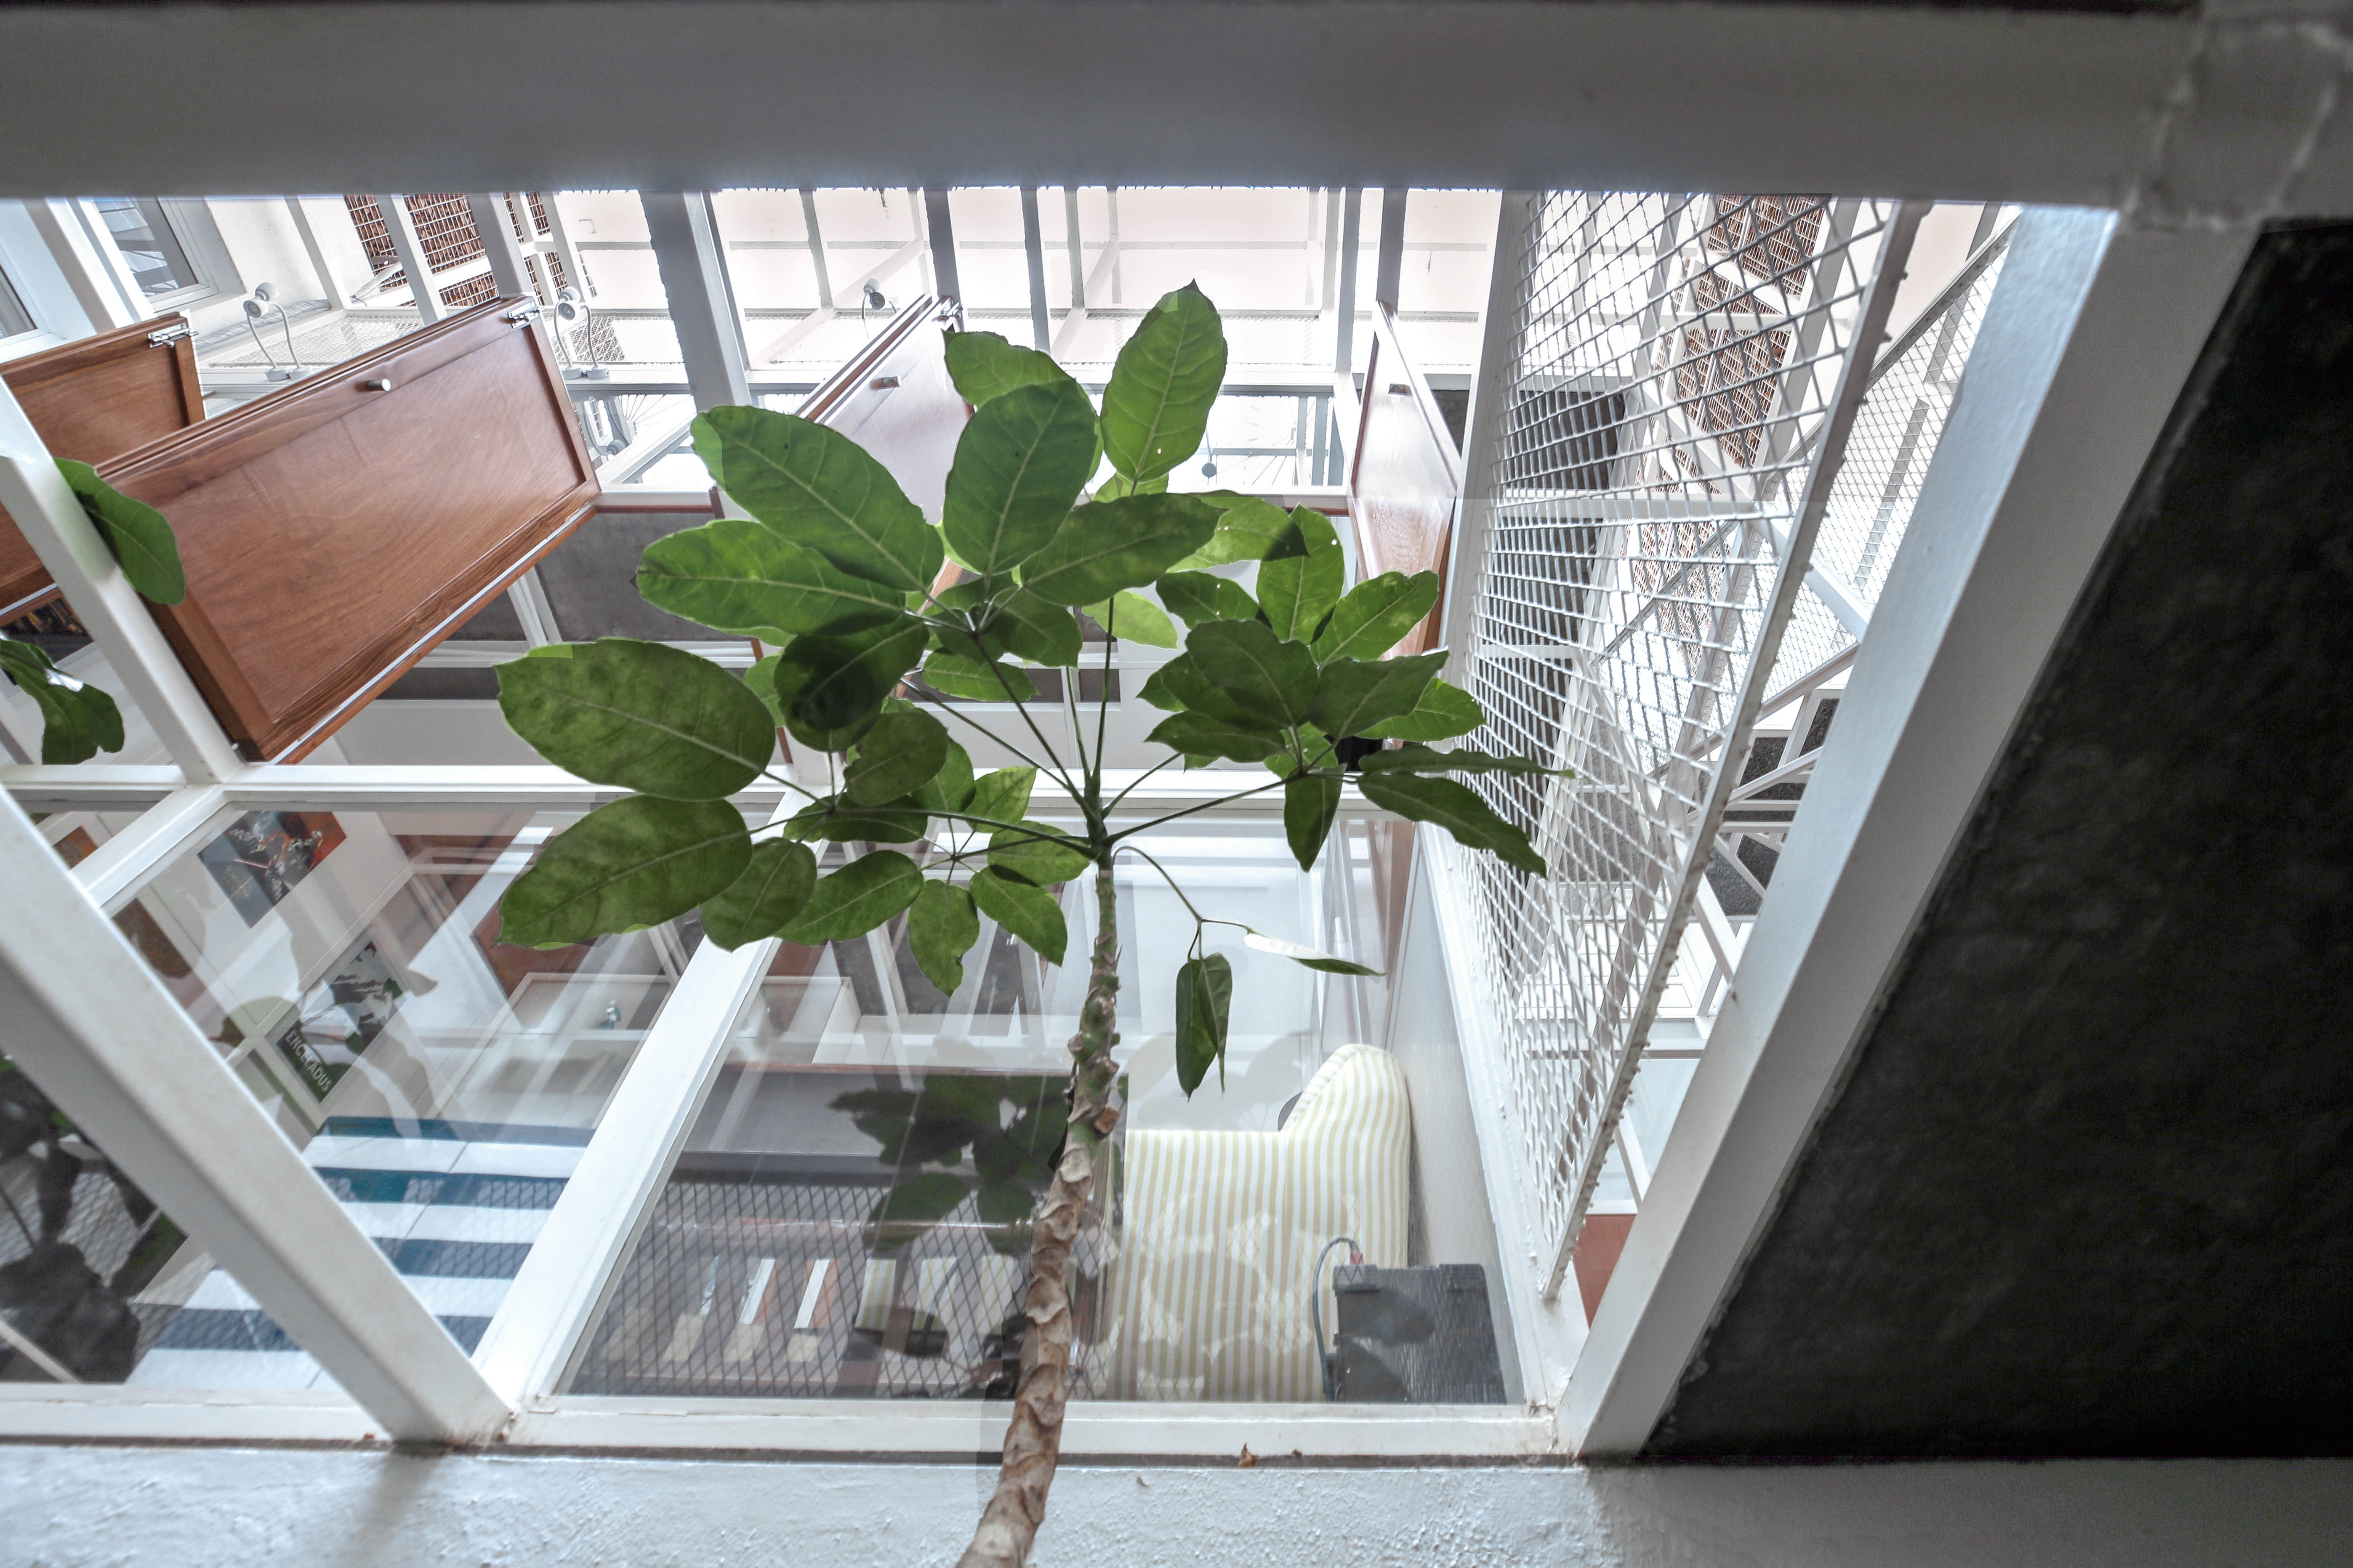 View looking up from internal garden